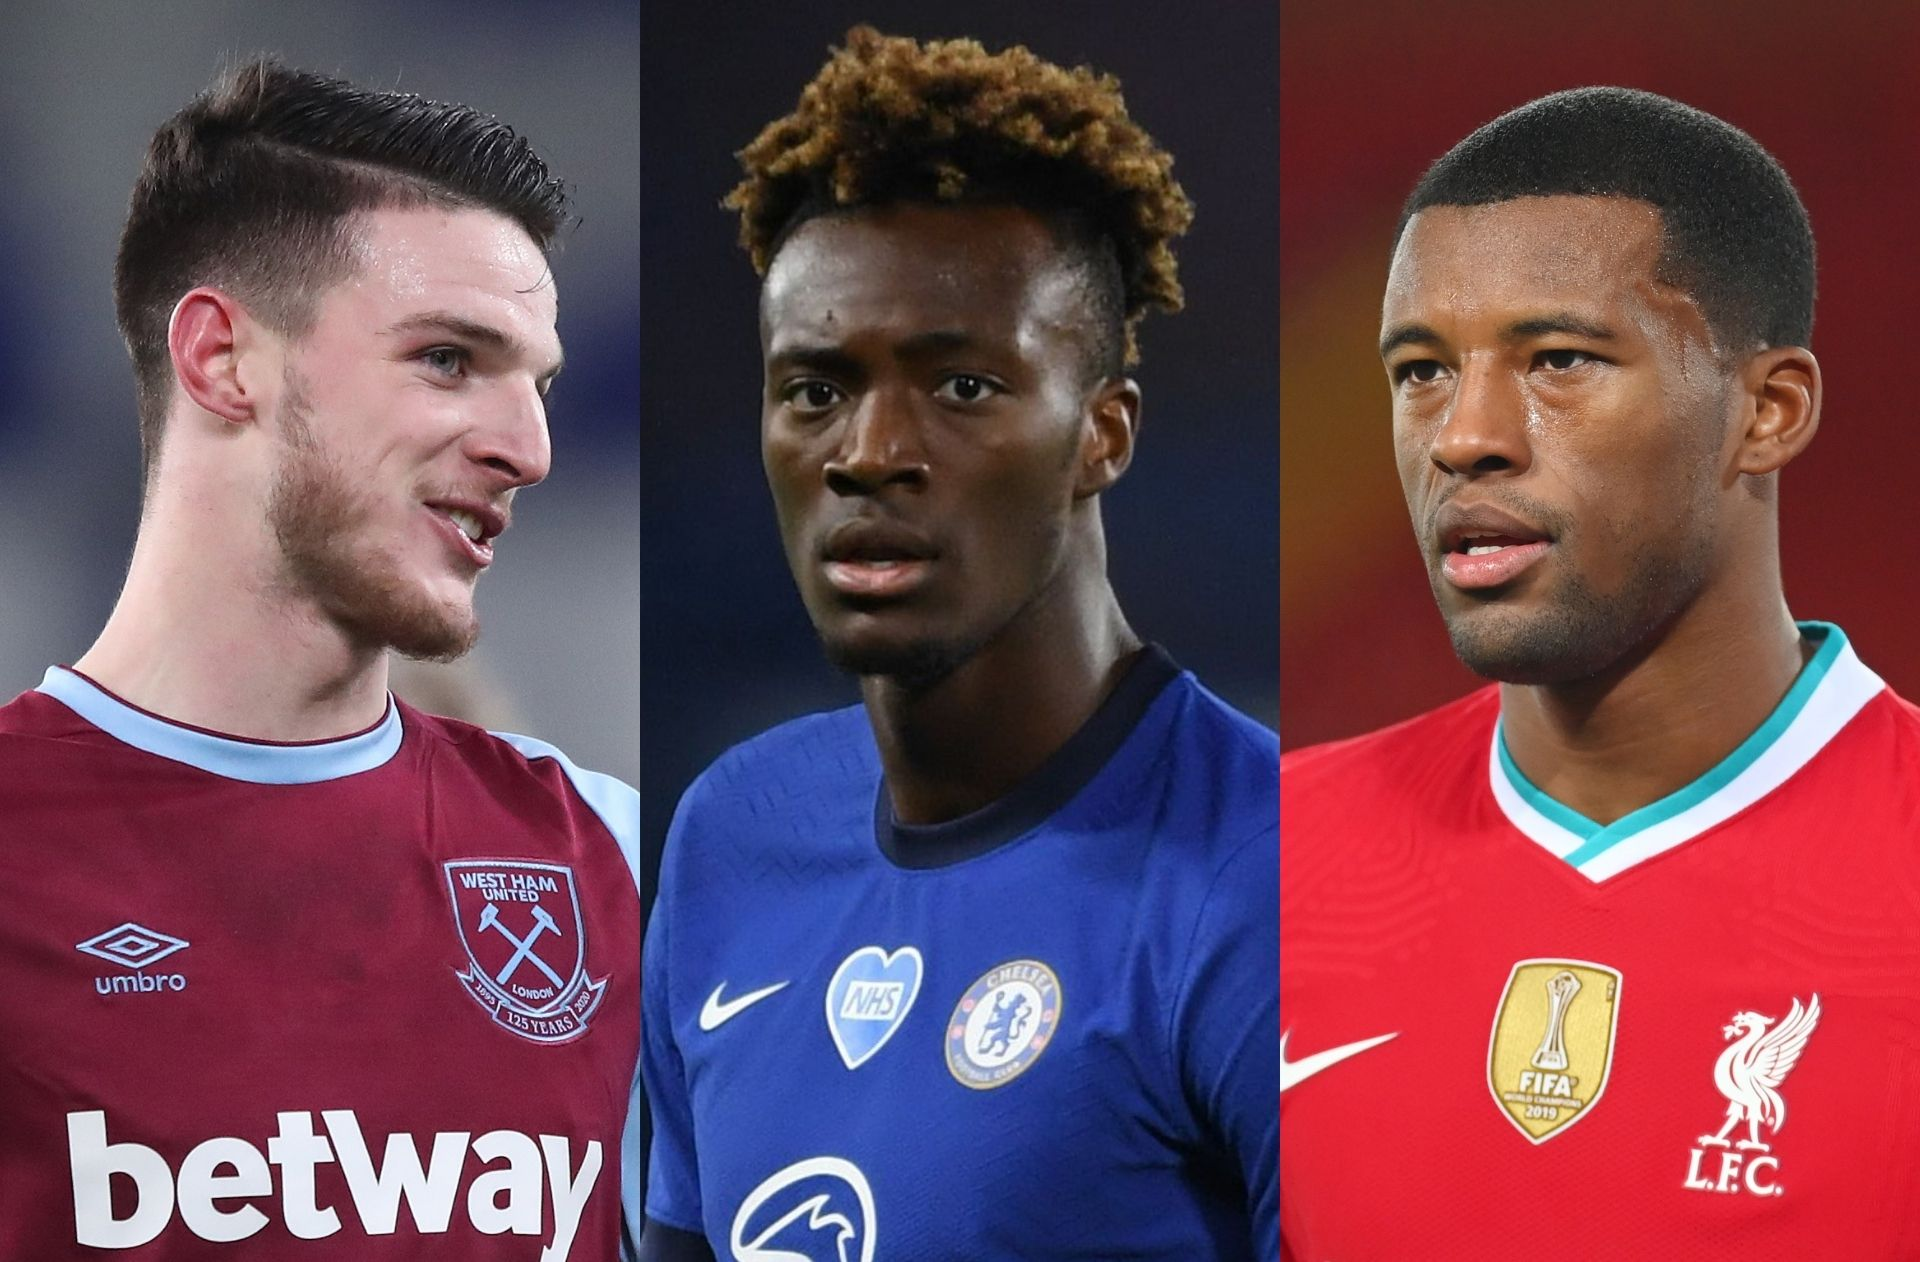 Friday's transfer rumors - Man United to offer 3 players for Rice?